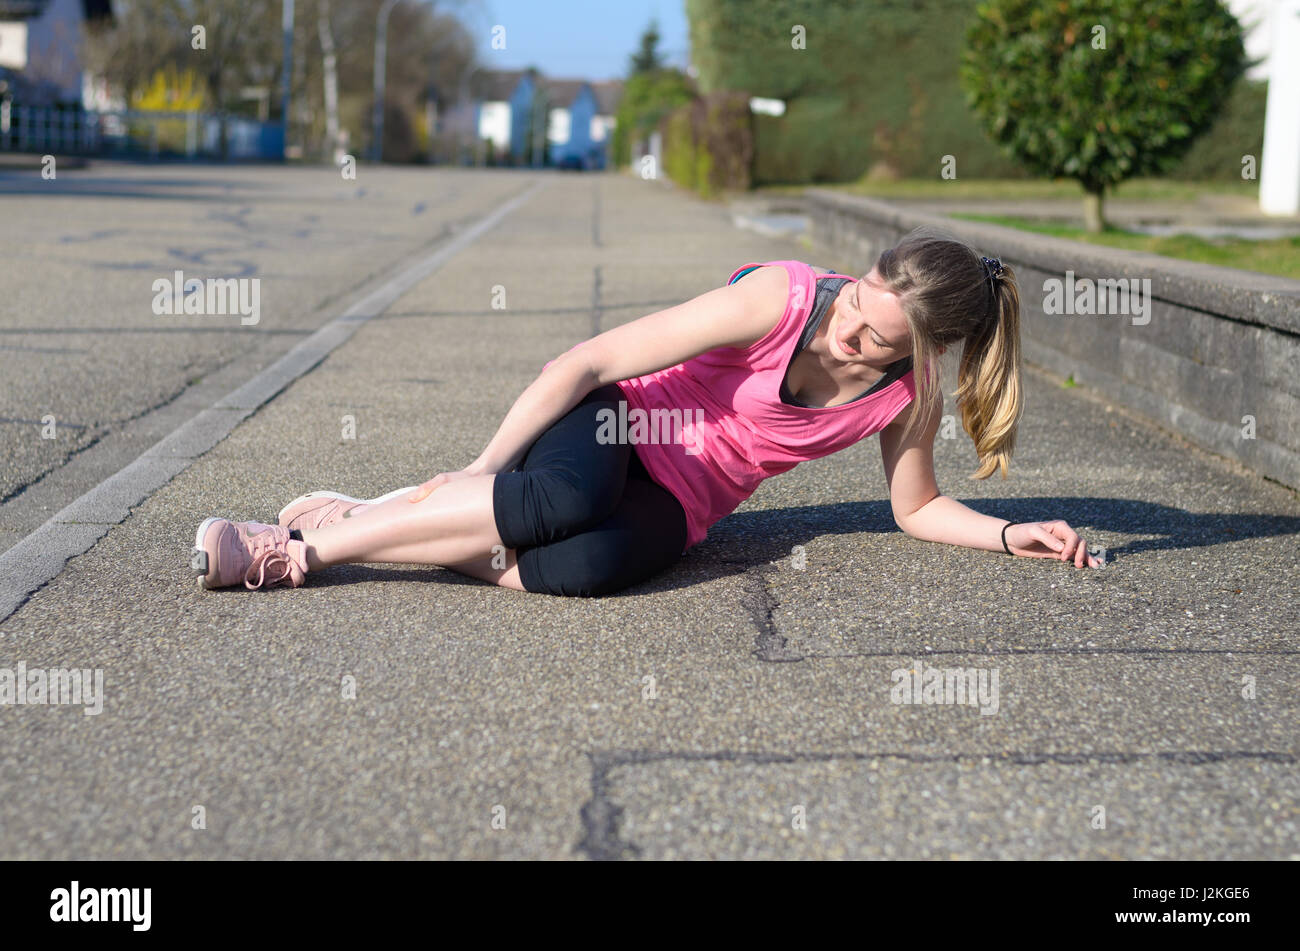 Female athlete with calf cramps lying on the sidewalk of a tarred road clutching her lower leg muscles in agony - Stock Image